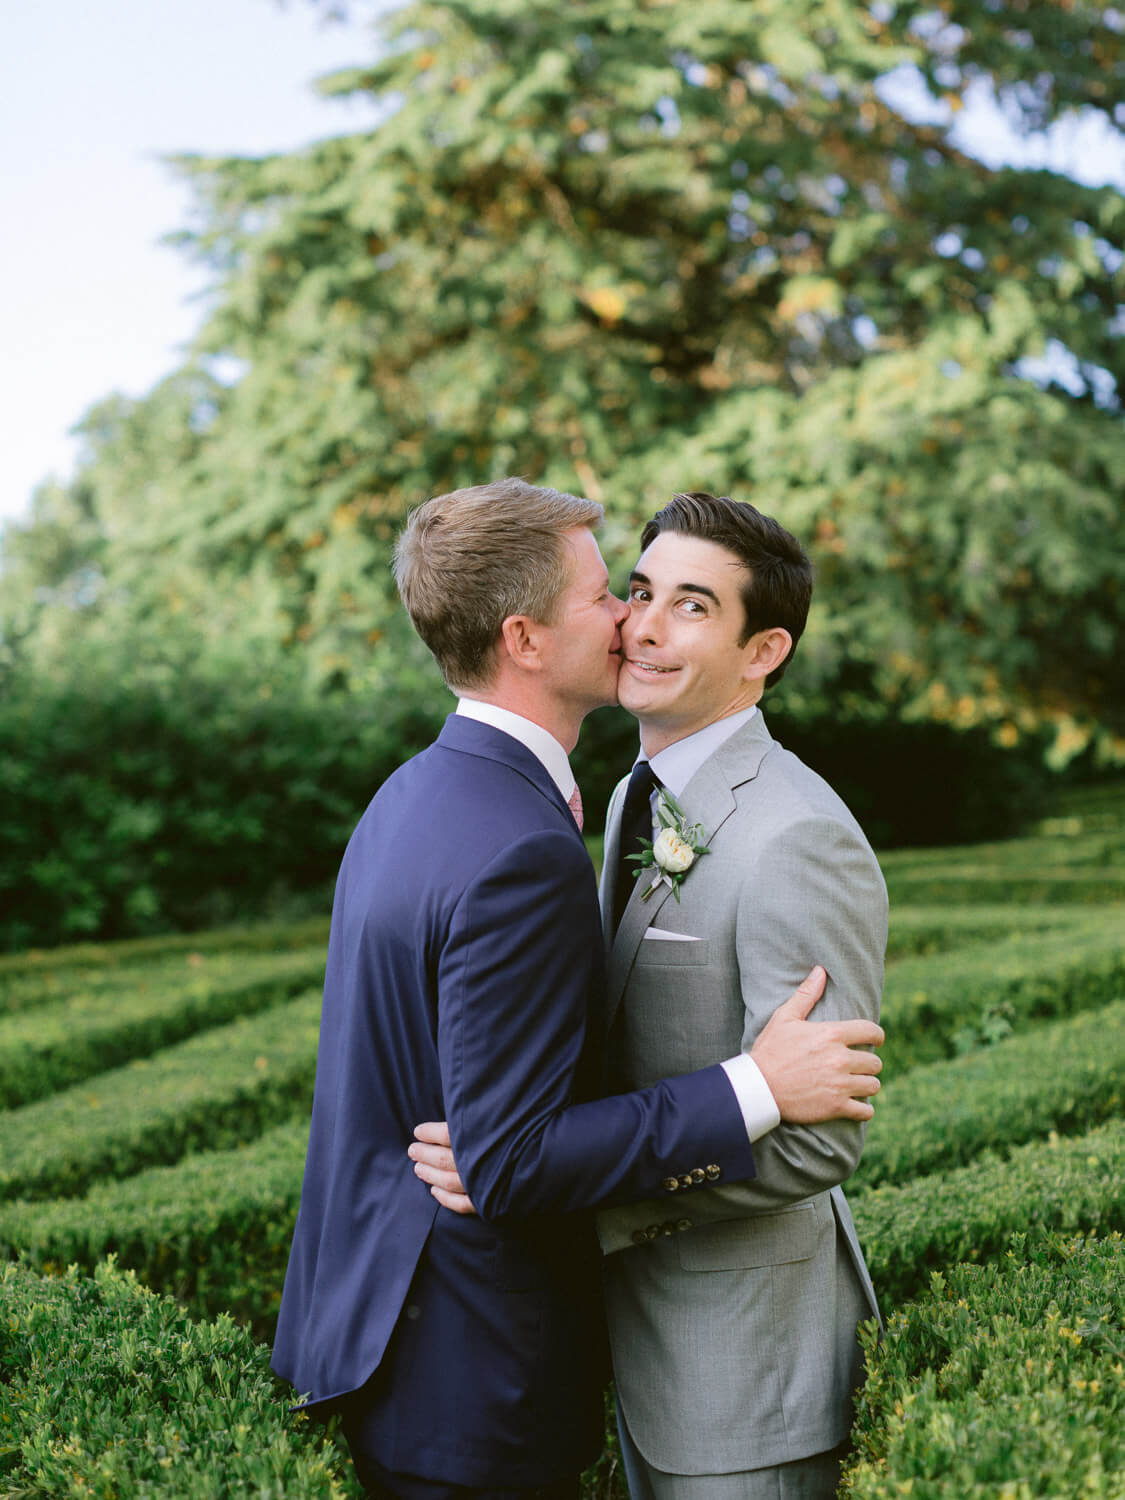 newlyweds kissing in Seteais Palace French garden by Portugal Wedding Photographer